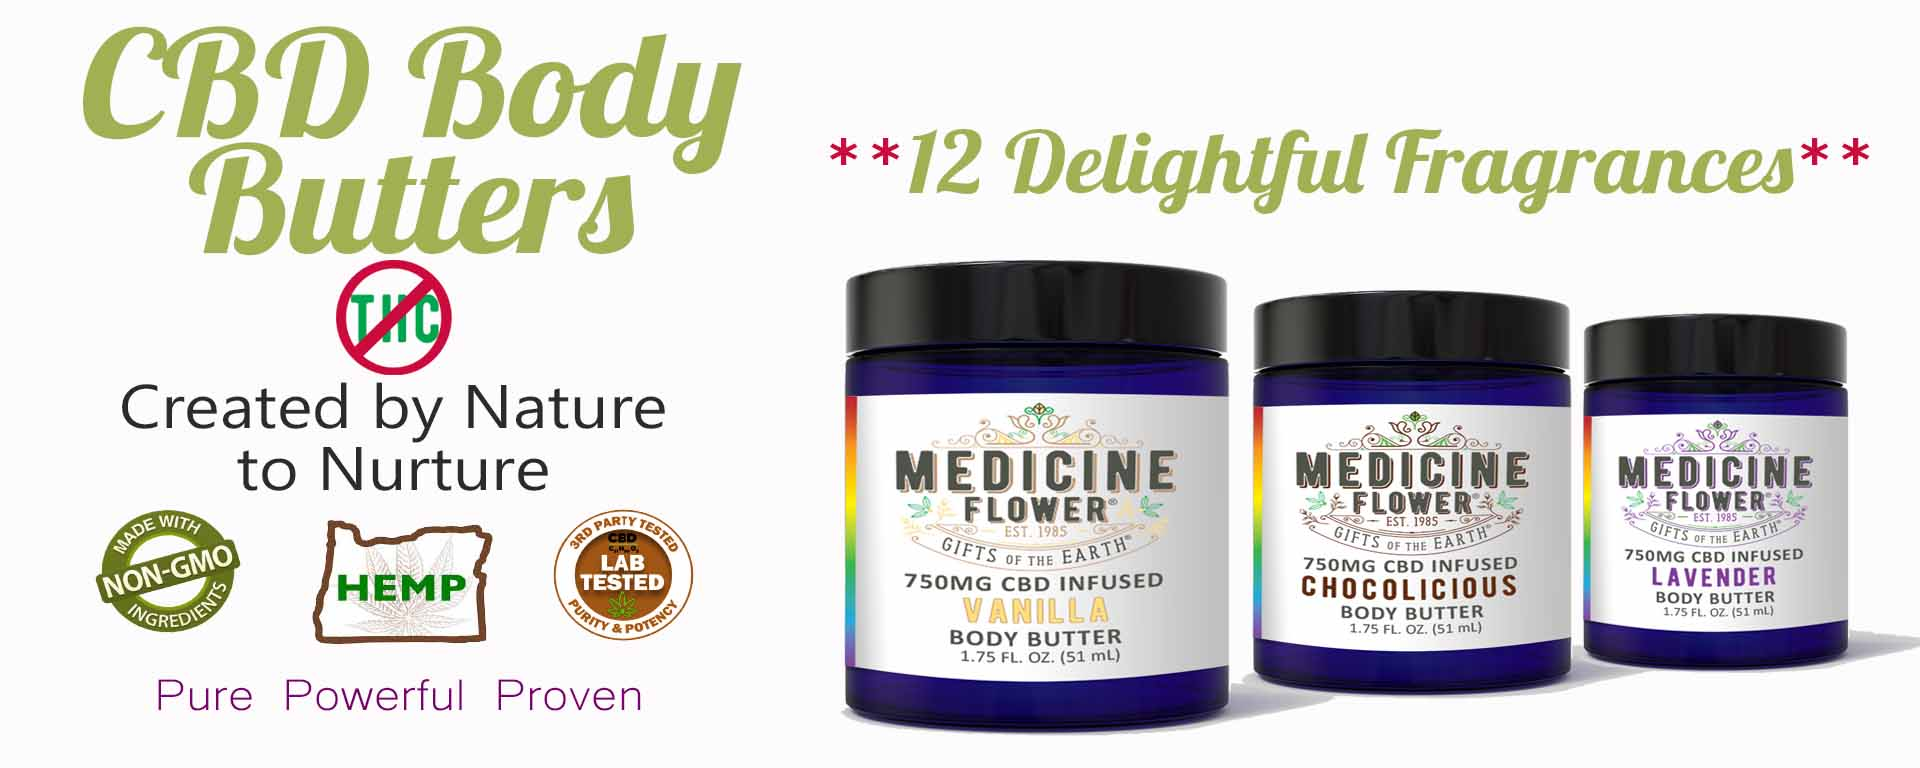 Medidine Flower CBD Body Butter